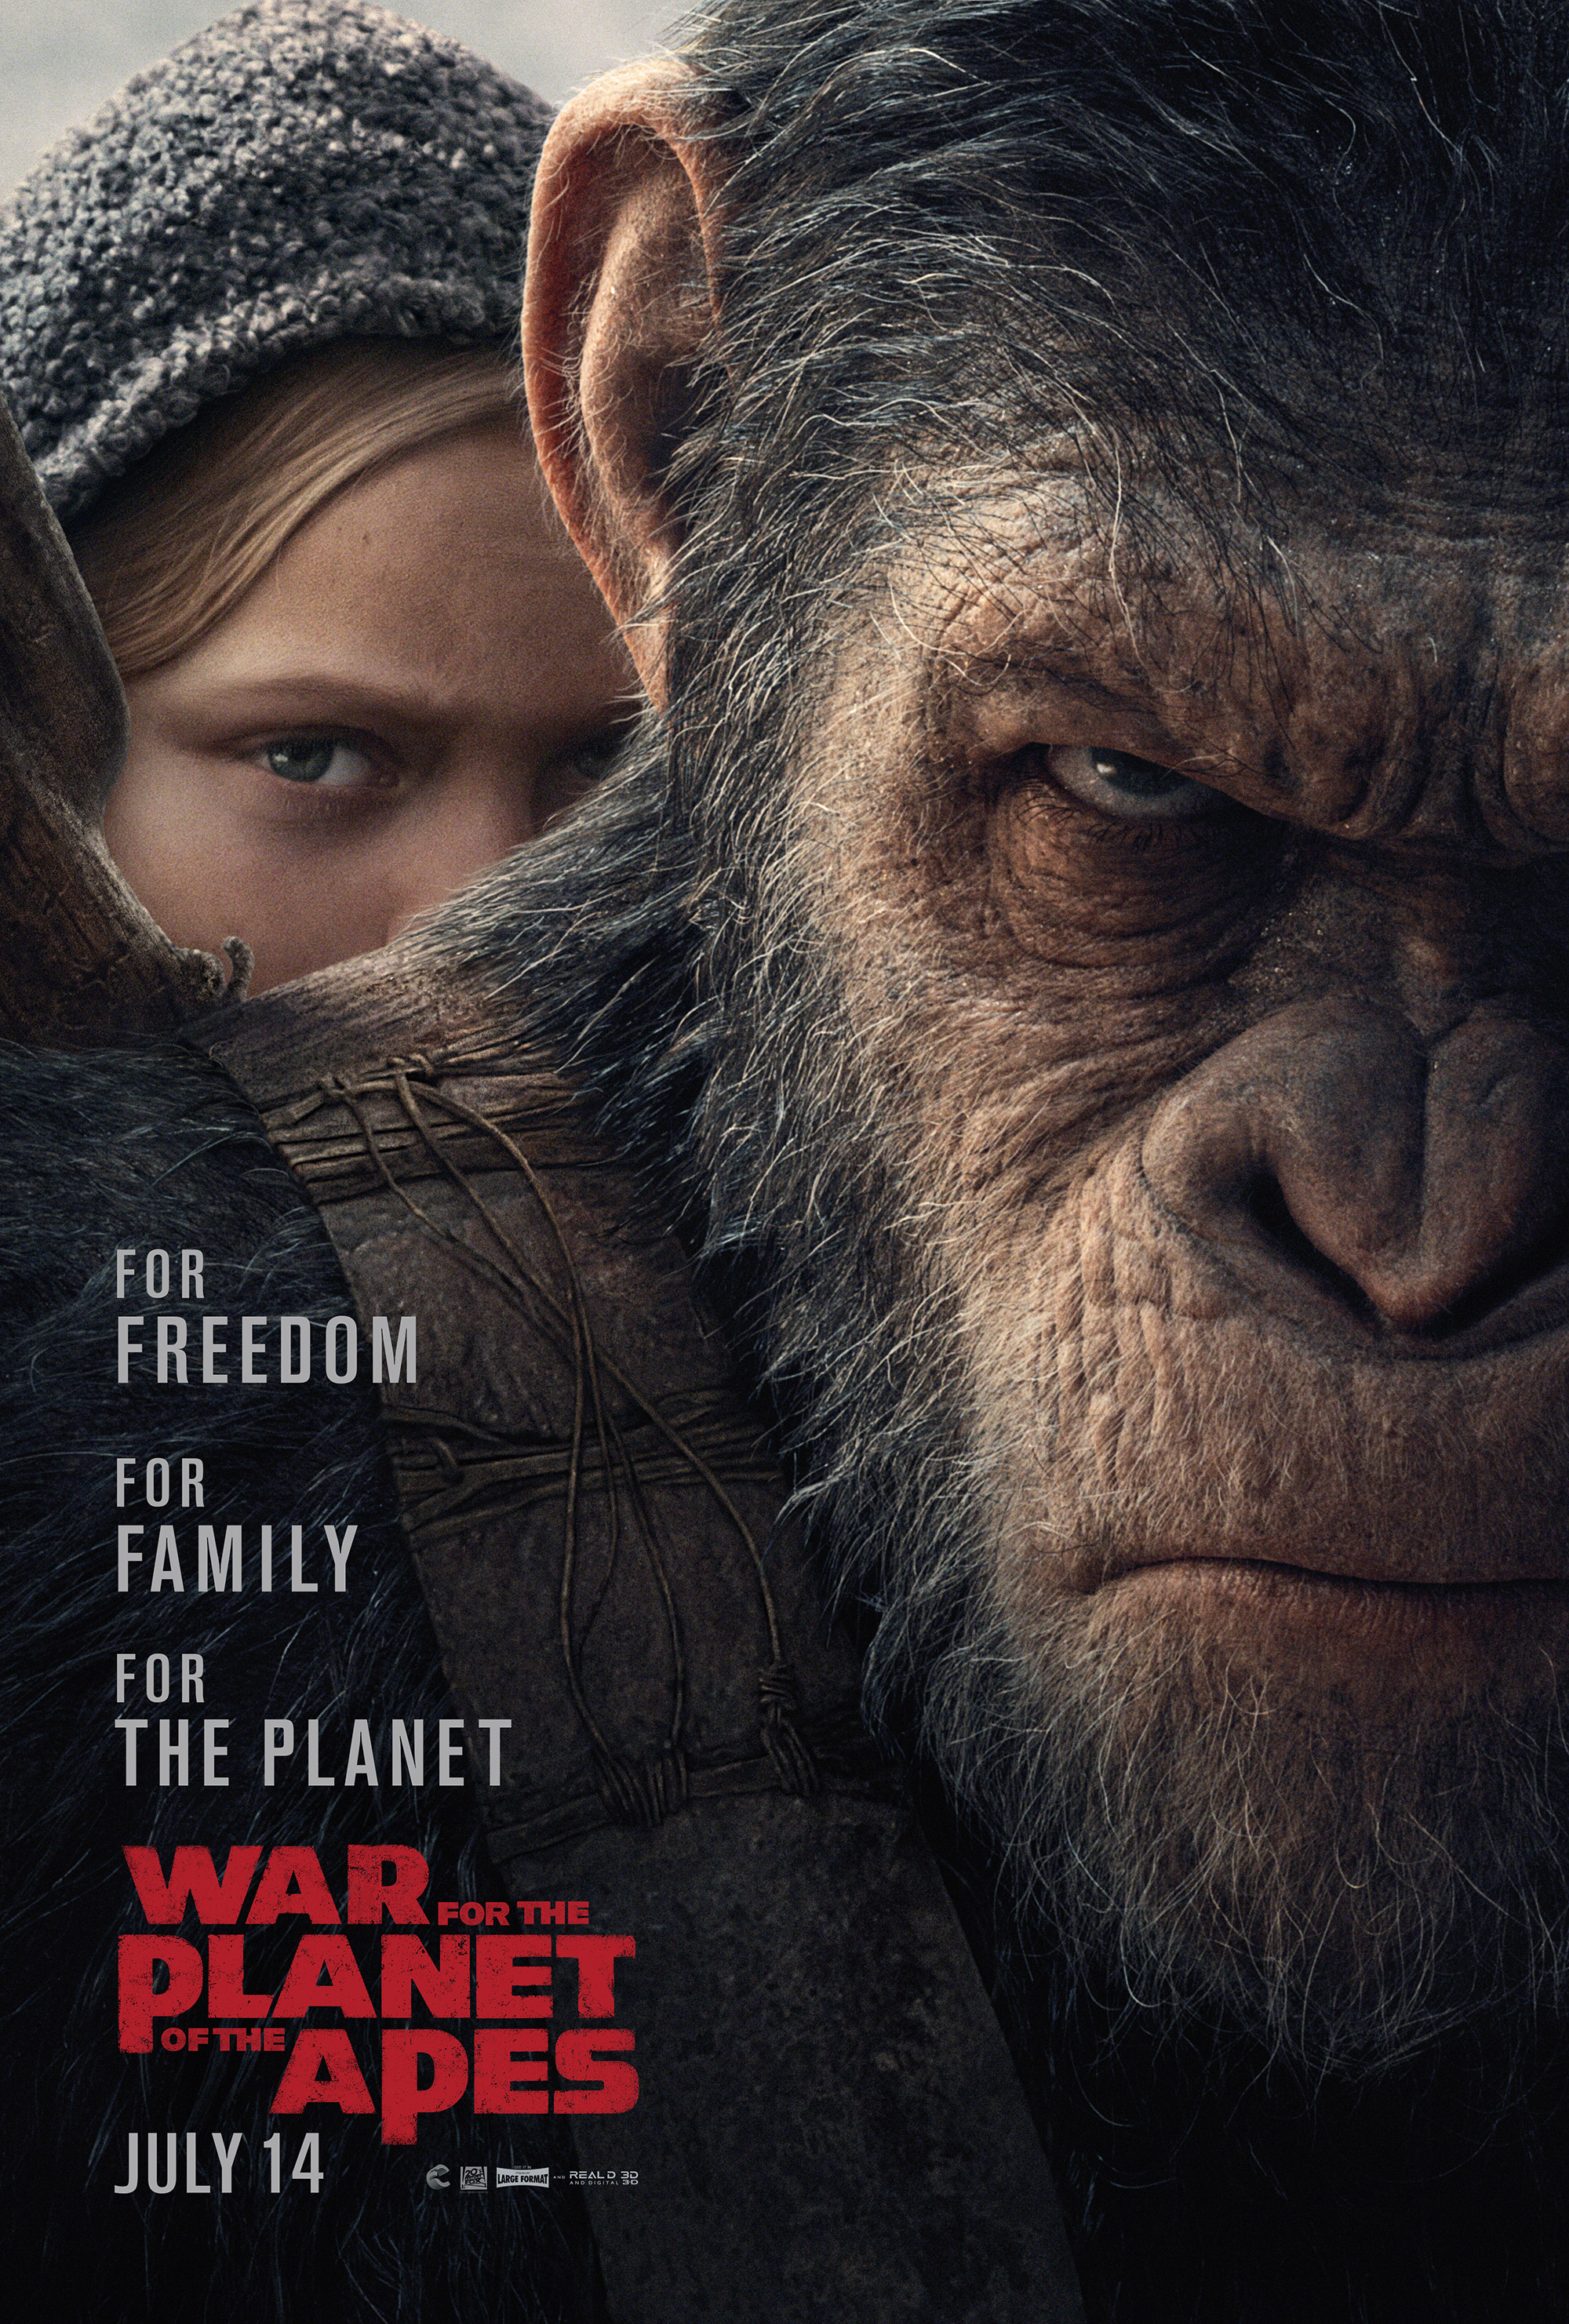 WAR-FOR-THE-PLANET-OF-THE-APES-_-Poster